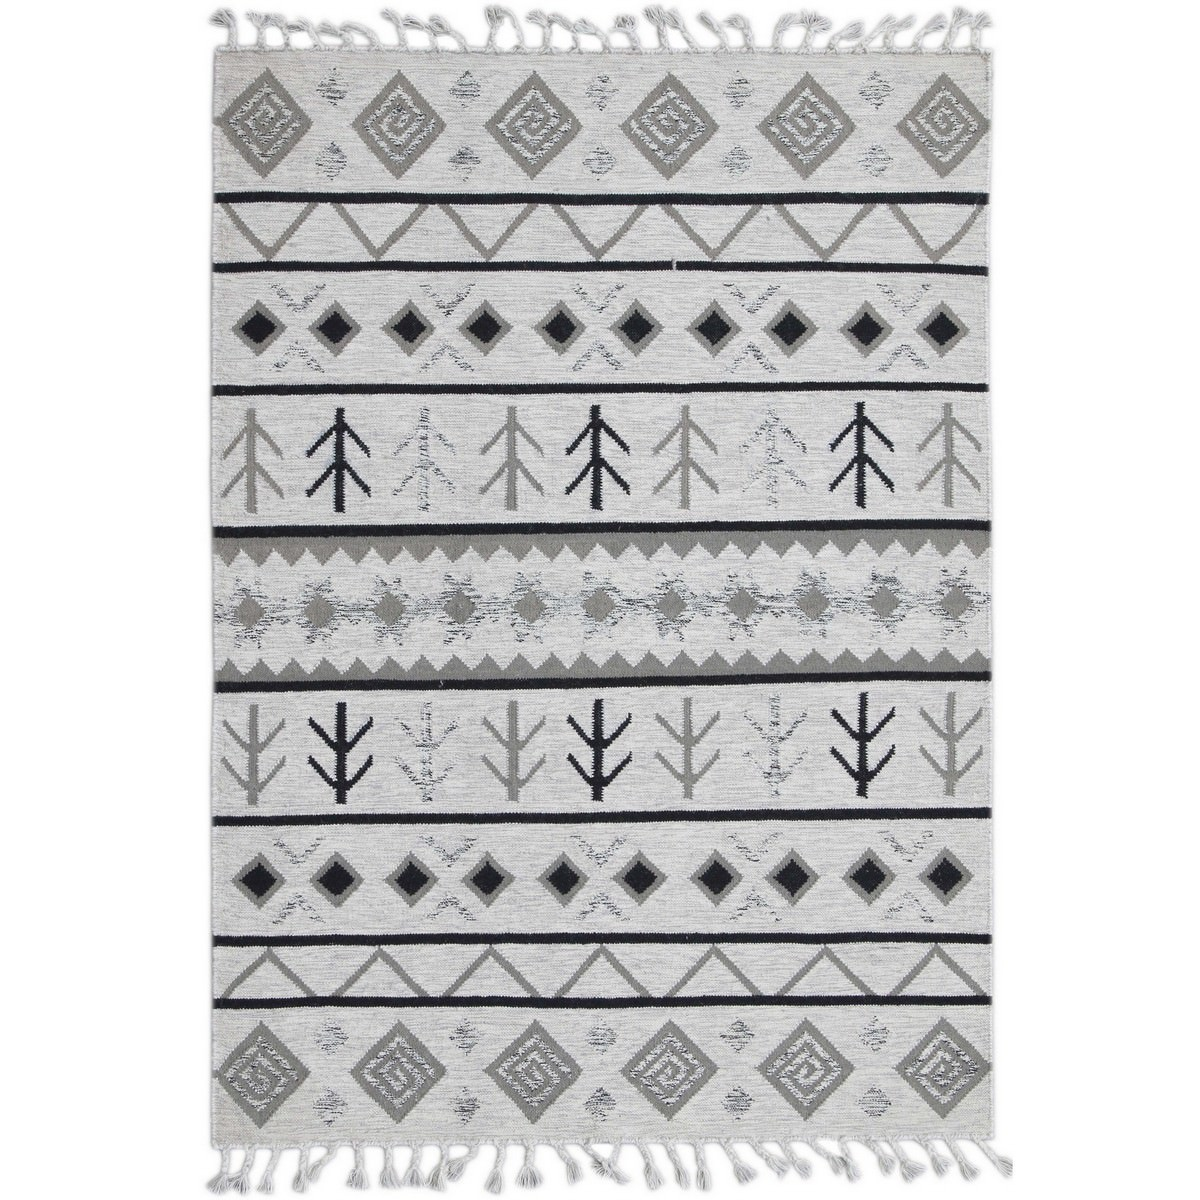 Artifact Handwoven Wool Rug , 160x230cm, Ivory